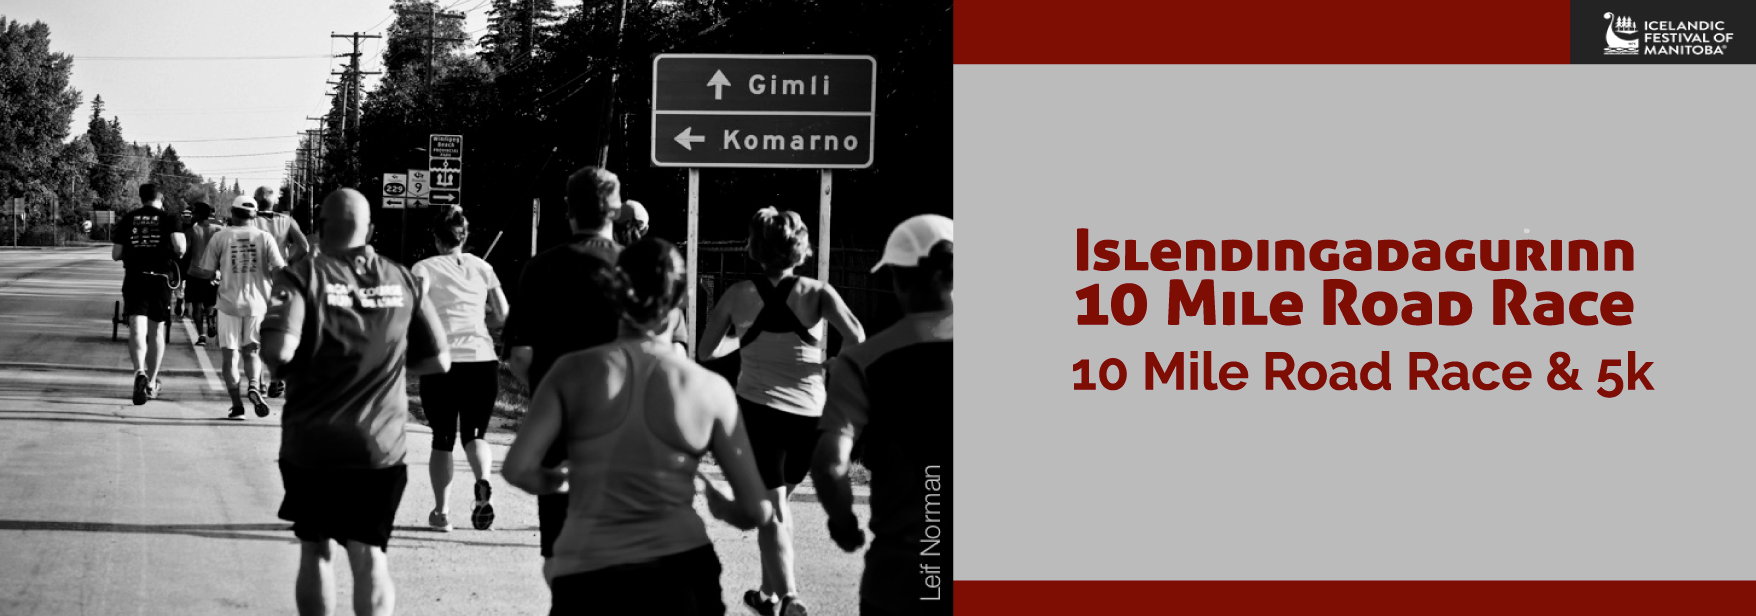 http://mraweb.ca/events/islendingadagurinn-10-mile-road-race-2/